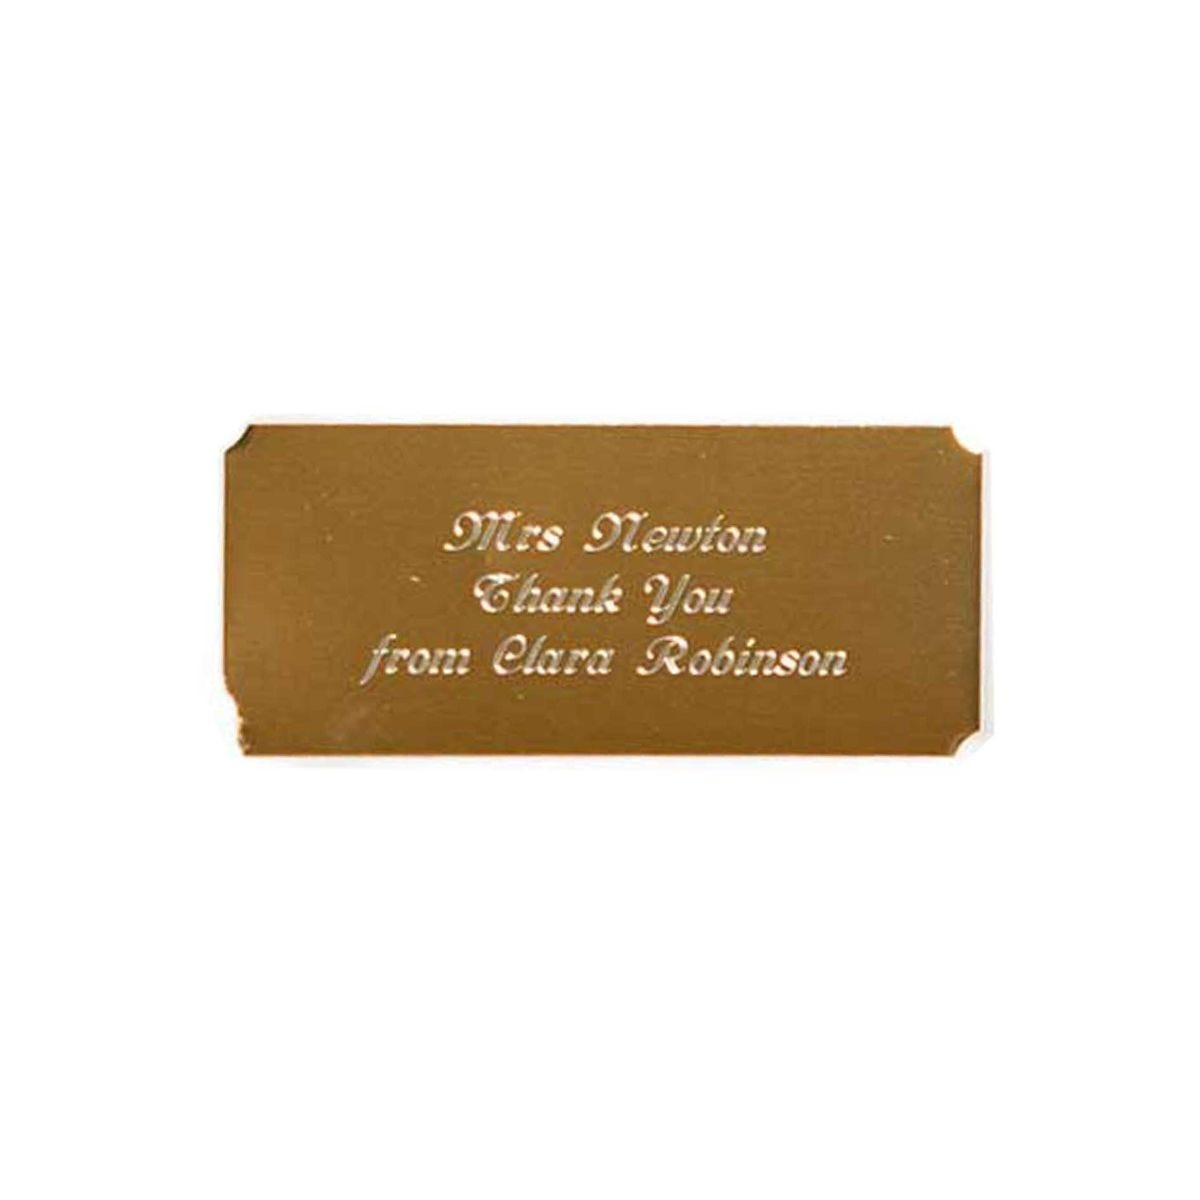 Personalised Engraved Self Adhesive Plate Gold